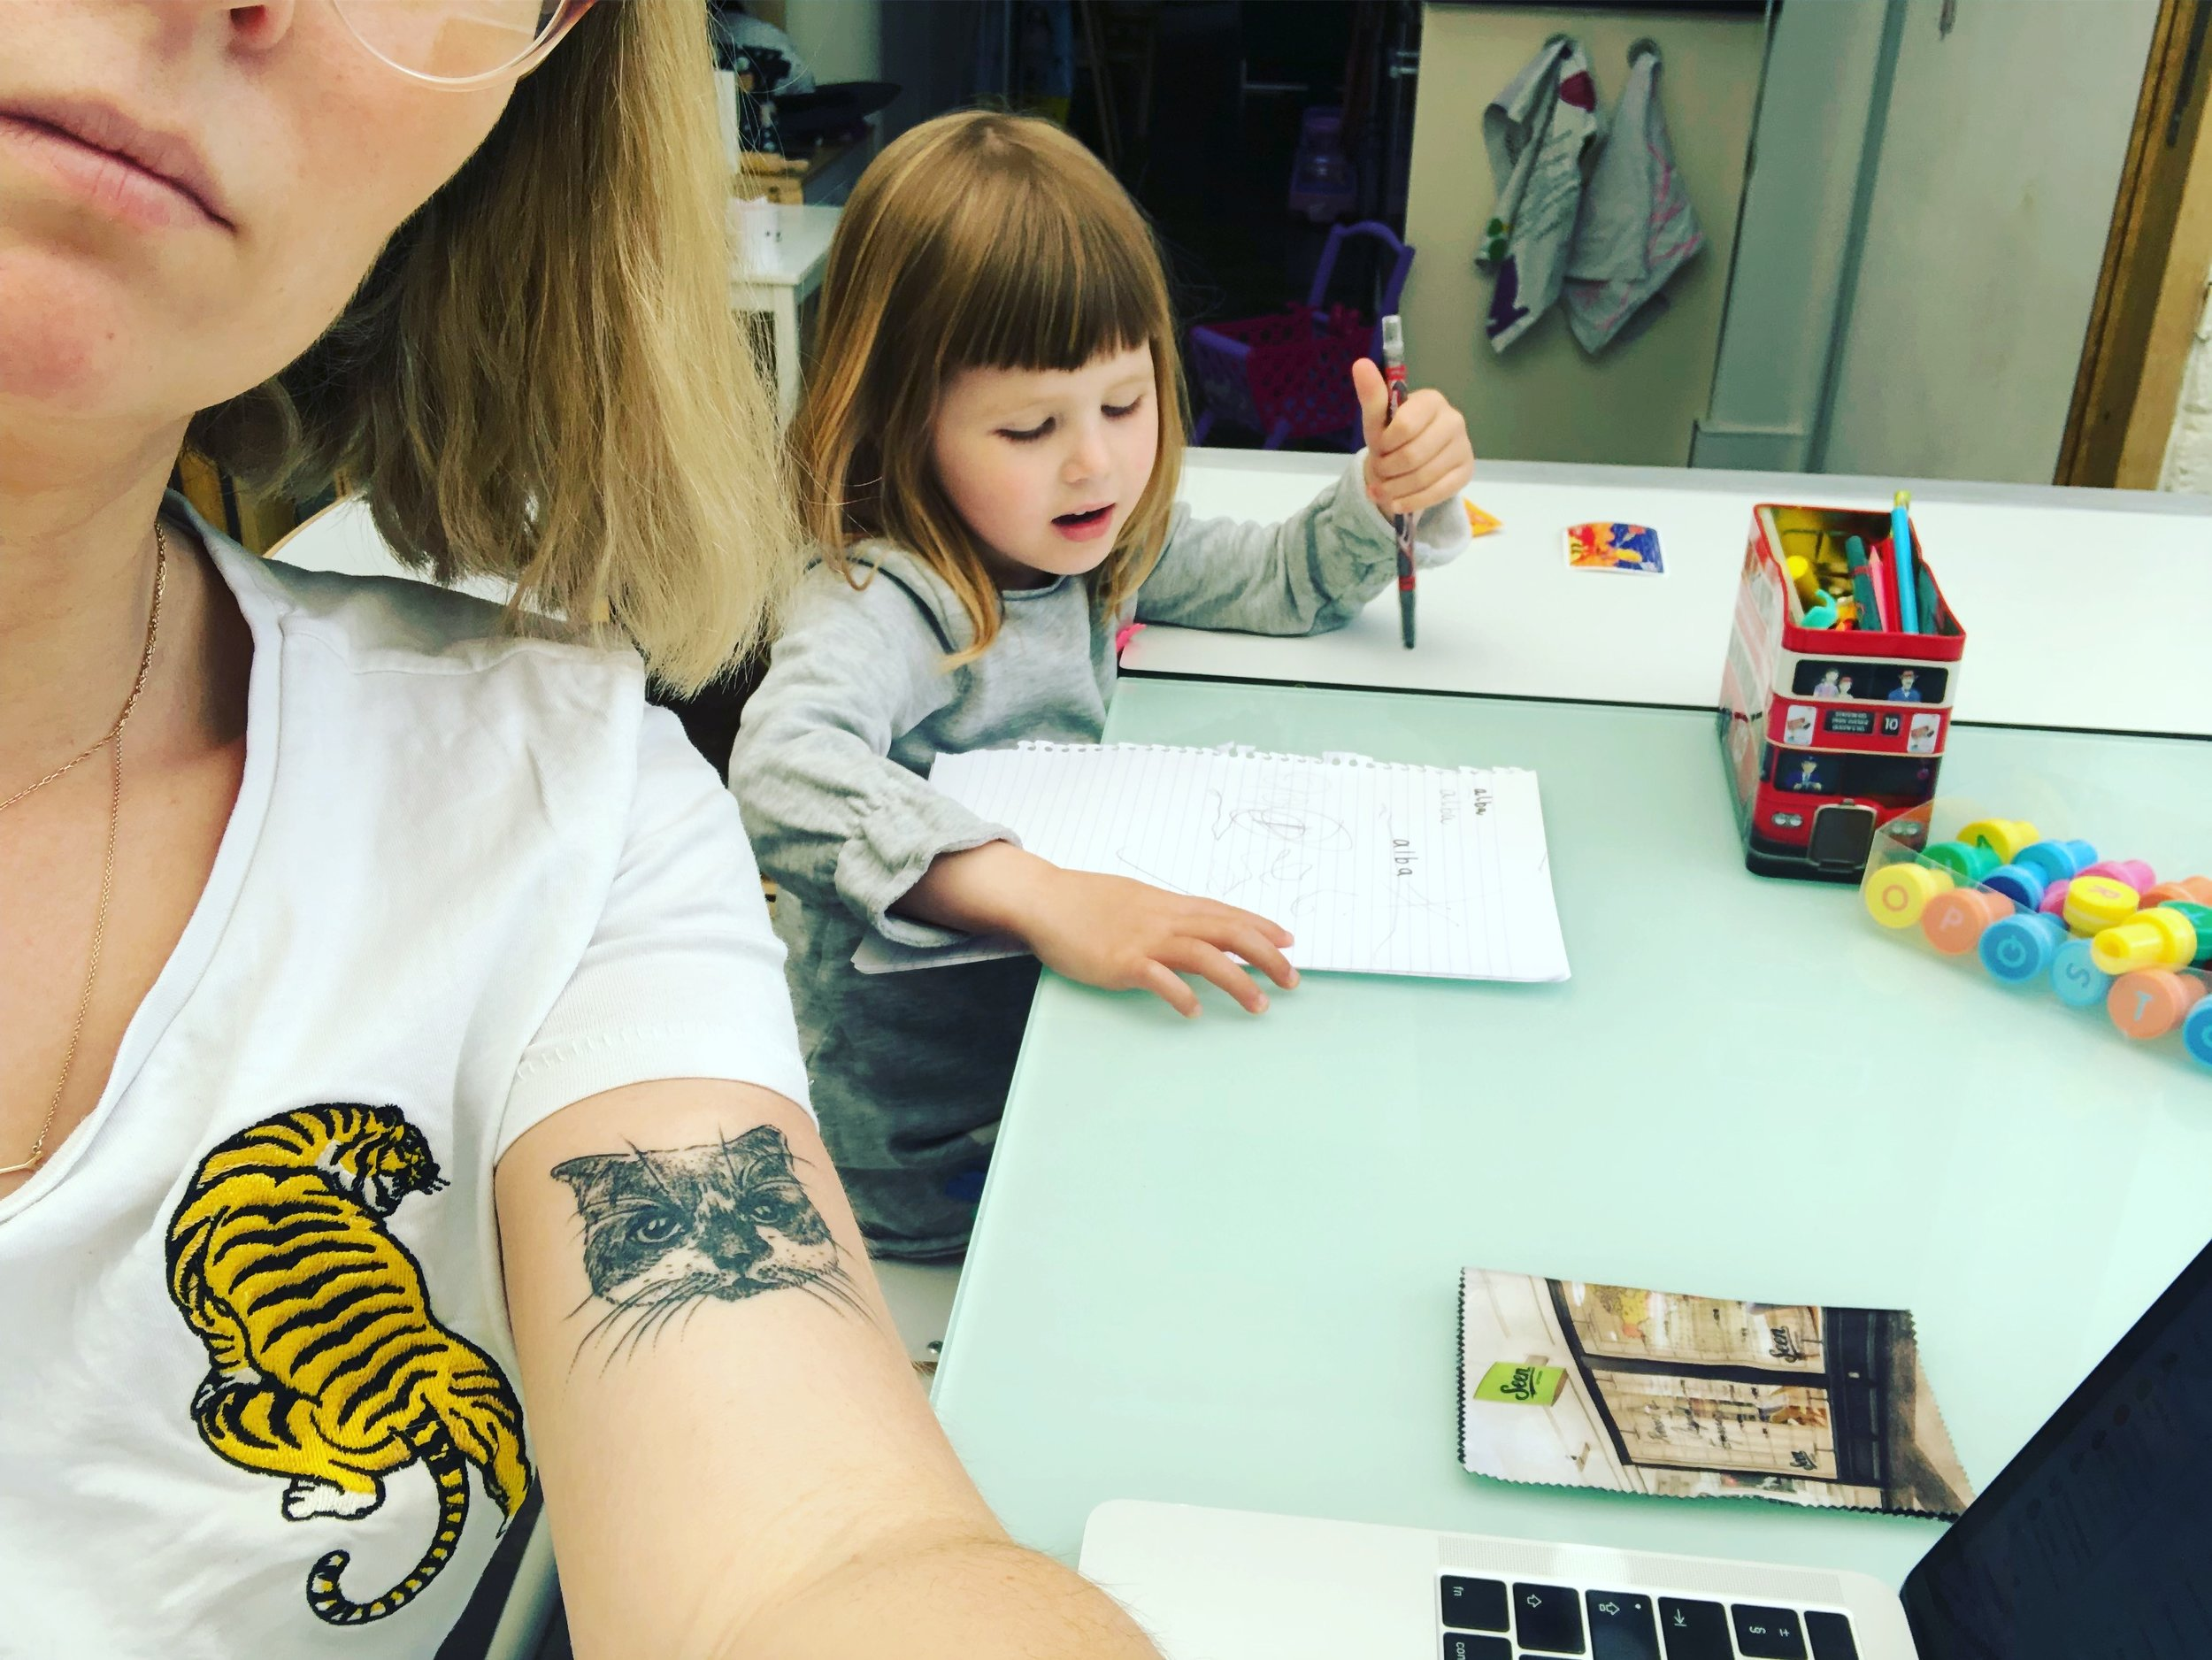 Anna Woolf, PhD candidate at Royal Central School of Speech and Drama. Writing part of my arts in health practice based theatre PhD whilst my daughter draws next to me.